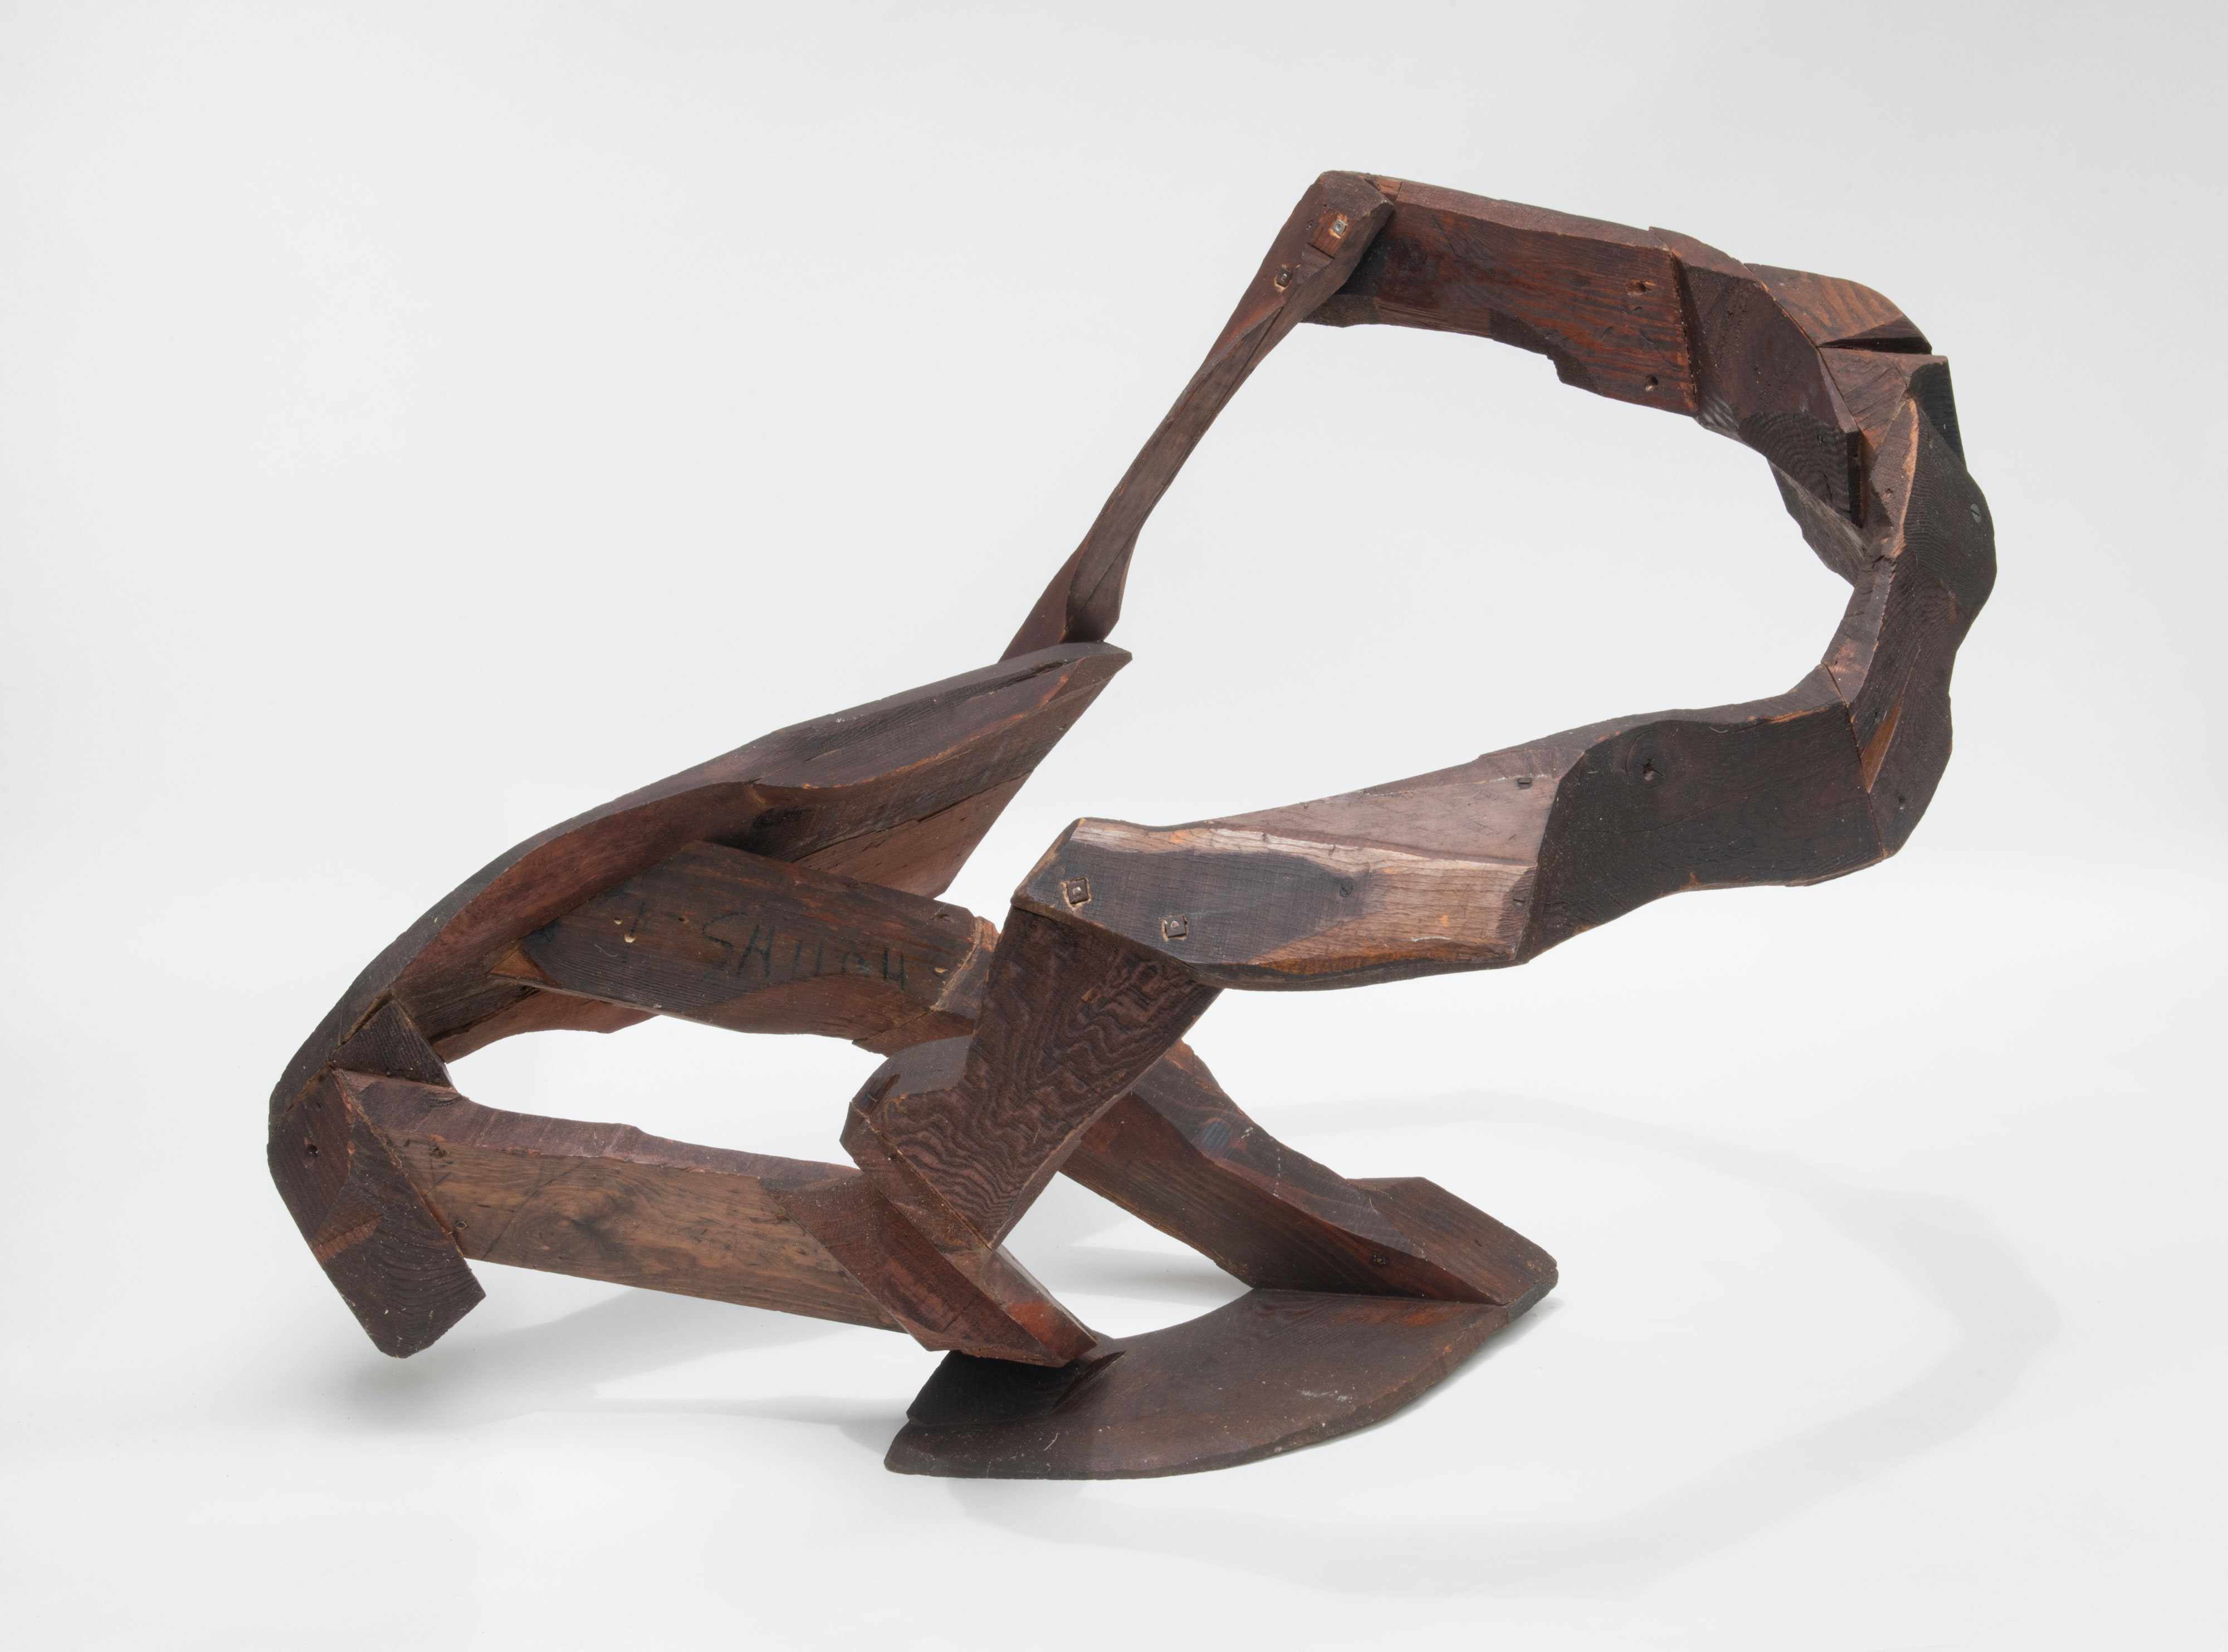 Tom Doyle, <em>Shiloh</em>, c. 1959. Found mixed woods, 38 x 40 x 58 inches. Courtesy Zürcher Gallery, New York.